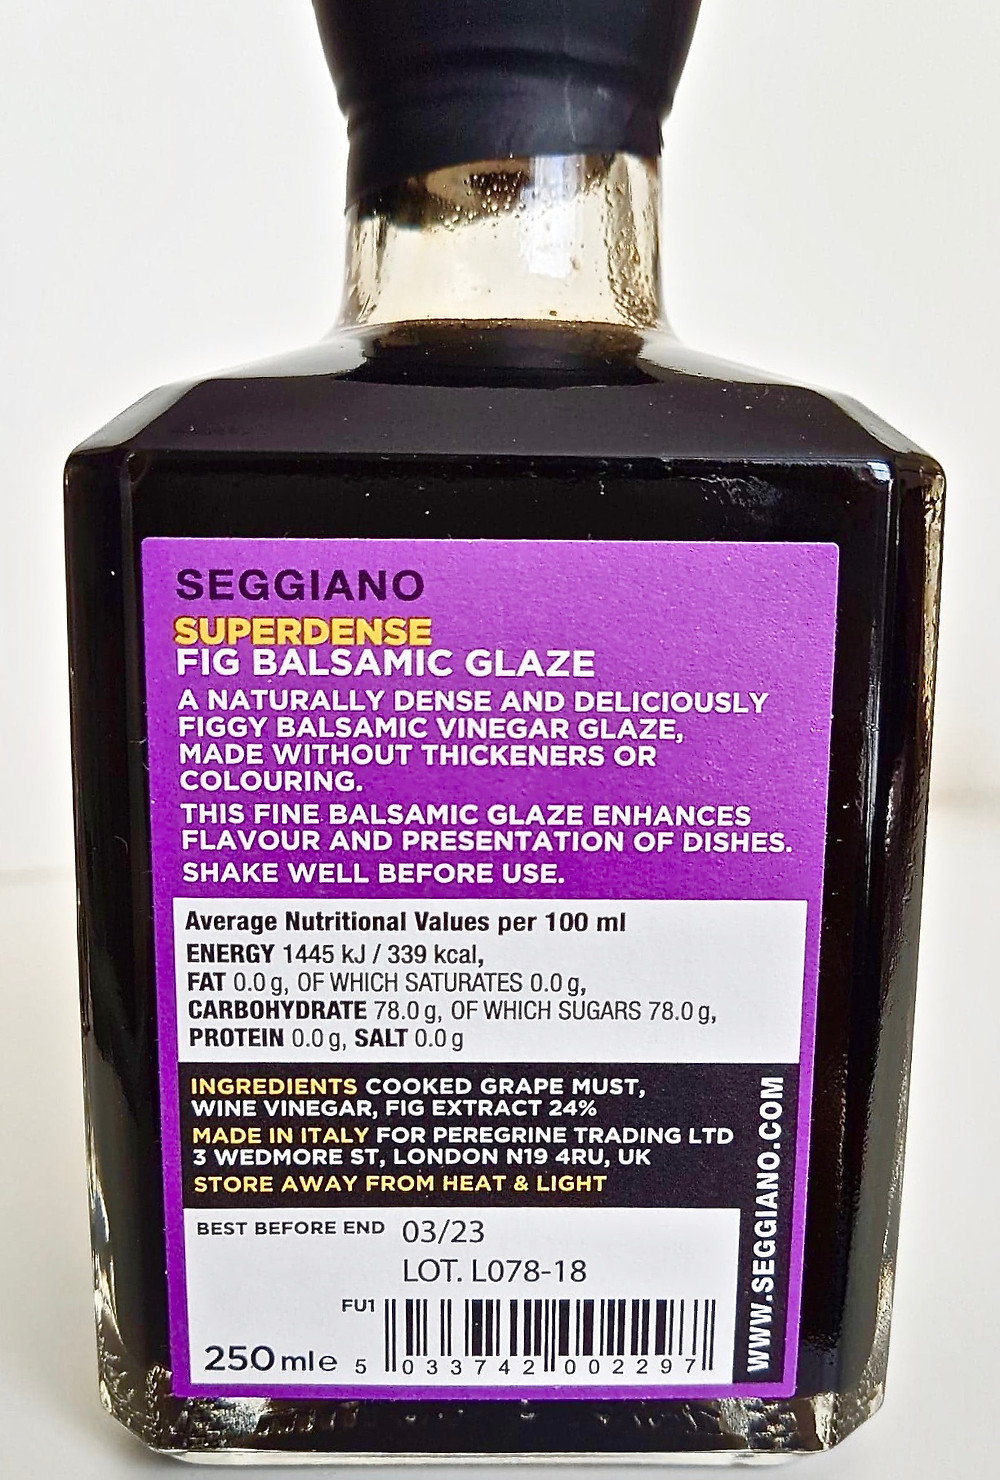 Seggiano Super Dense Fig Balsamic Glaze Ingredients